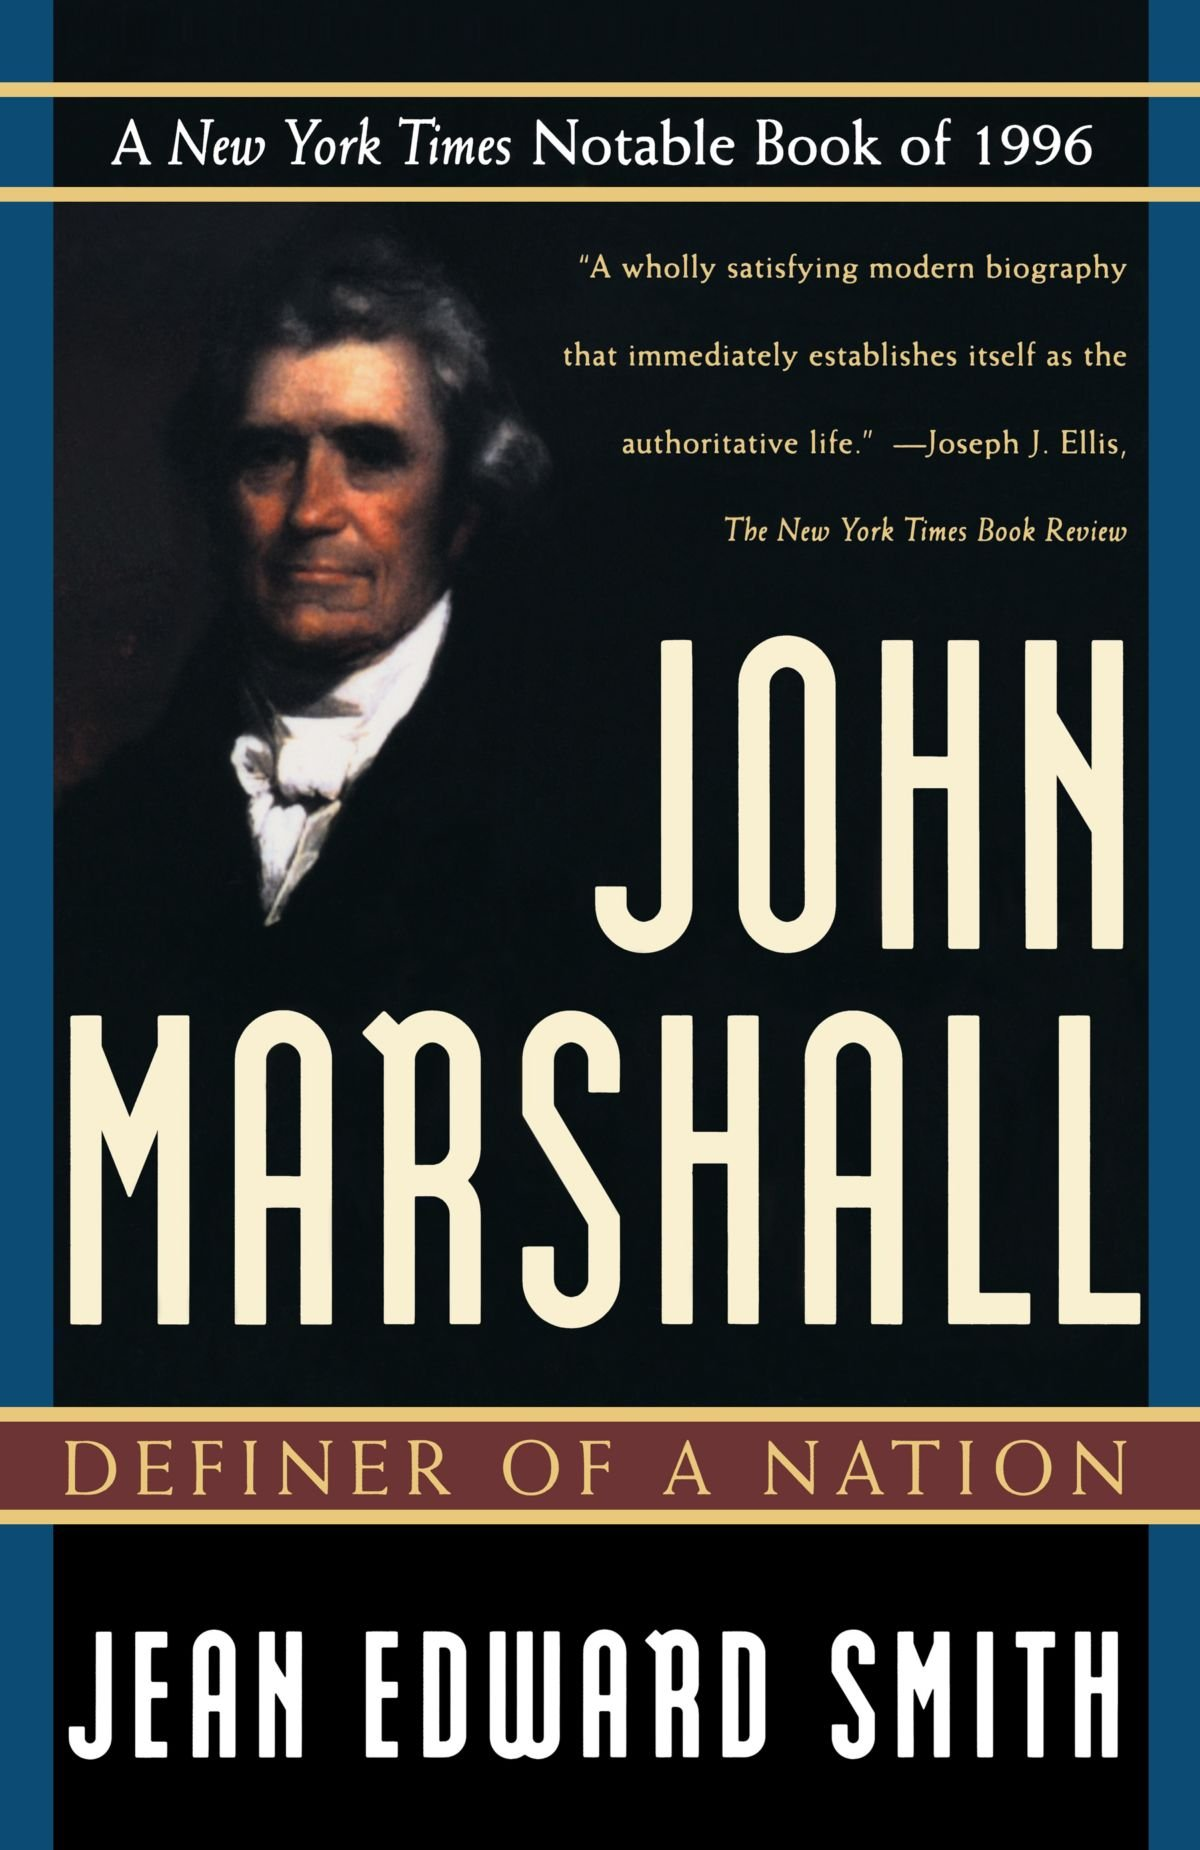 Learn more about Marshall with this biography by historian Jean Edward Smith.